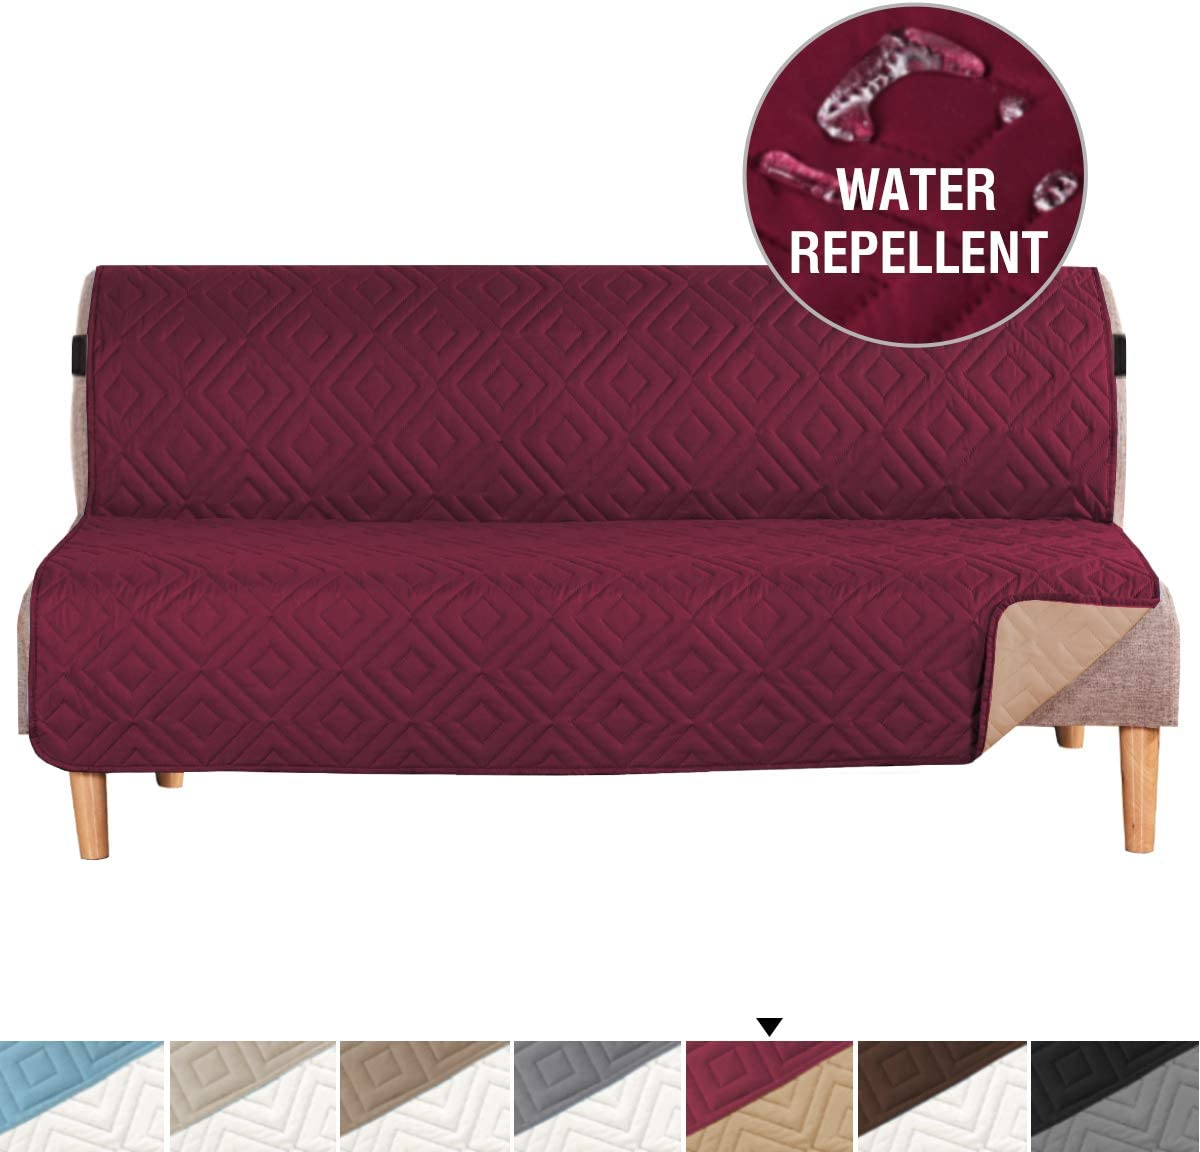 """H.VERSAILTEX Futon Cover Reversible Sofa Slipcover Furniture Protector Anti-Slip Couch Cover Water Resistant 2 Inch Wide Elastic Straps Sofa Cover for Pets Kids Dog Cat(Futon:76""""x70"""", Burgundy/Beige)"""